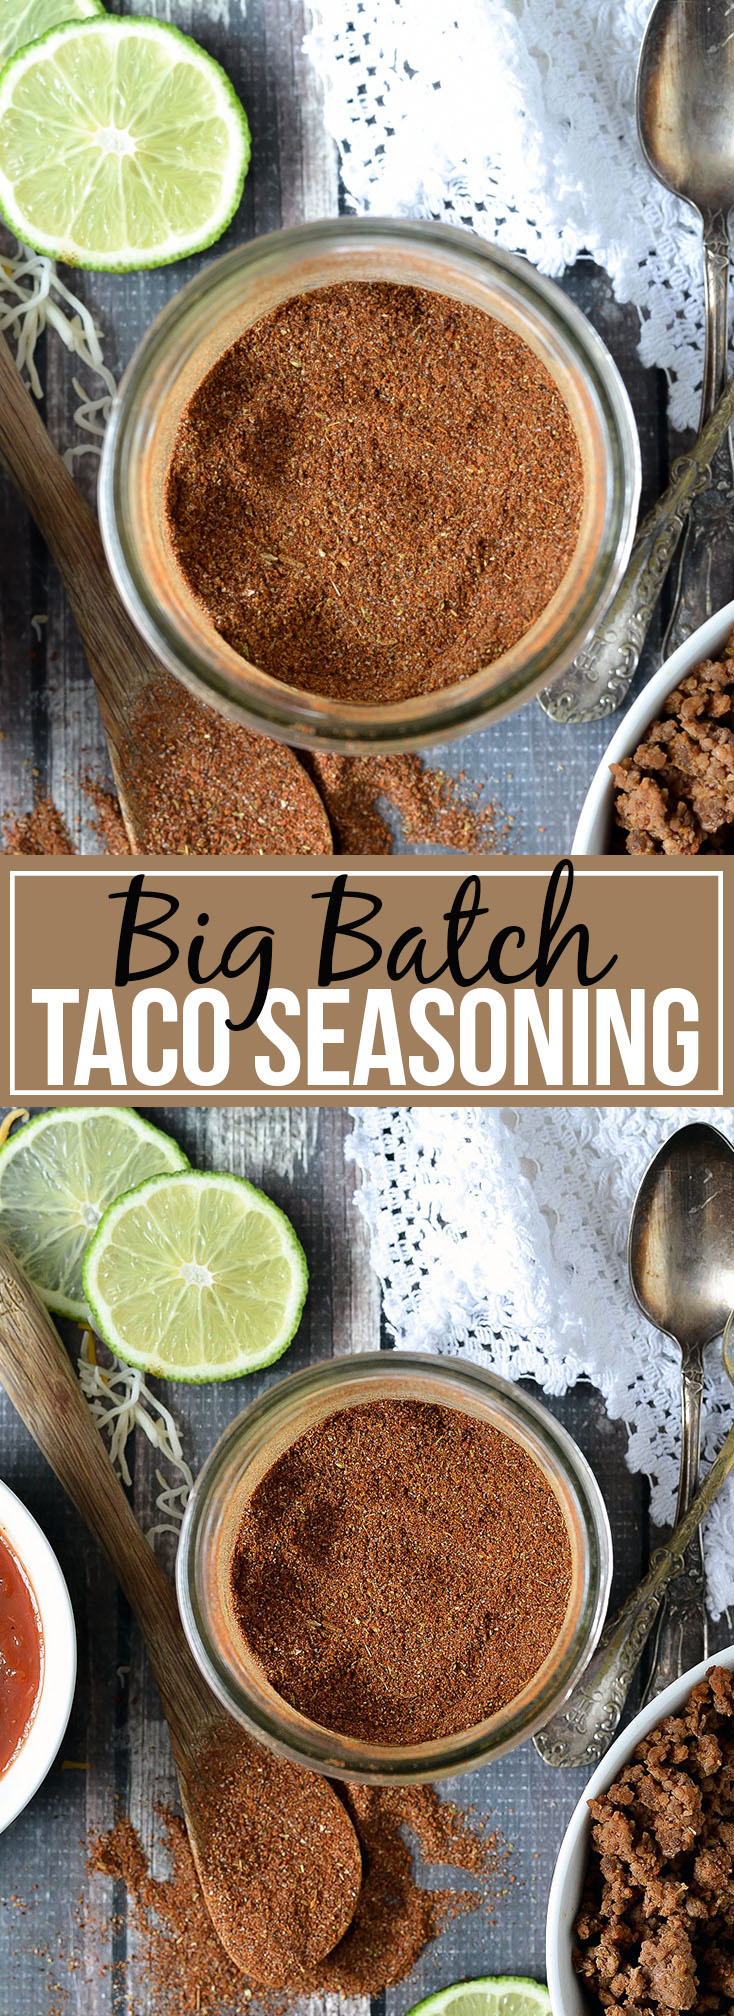 BIG BATCH HOMEMADE TACO SEASONING